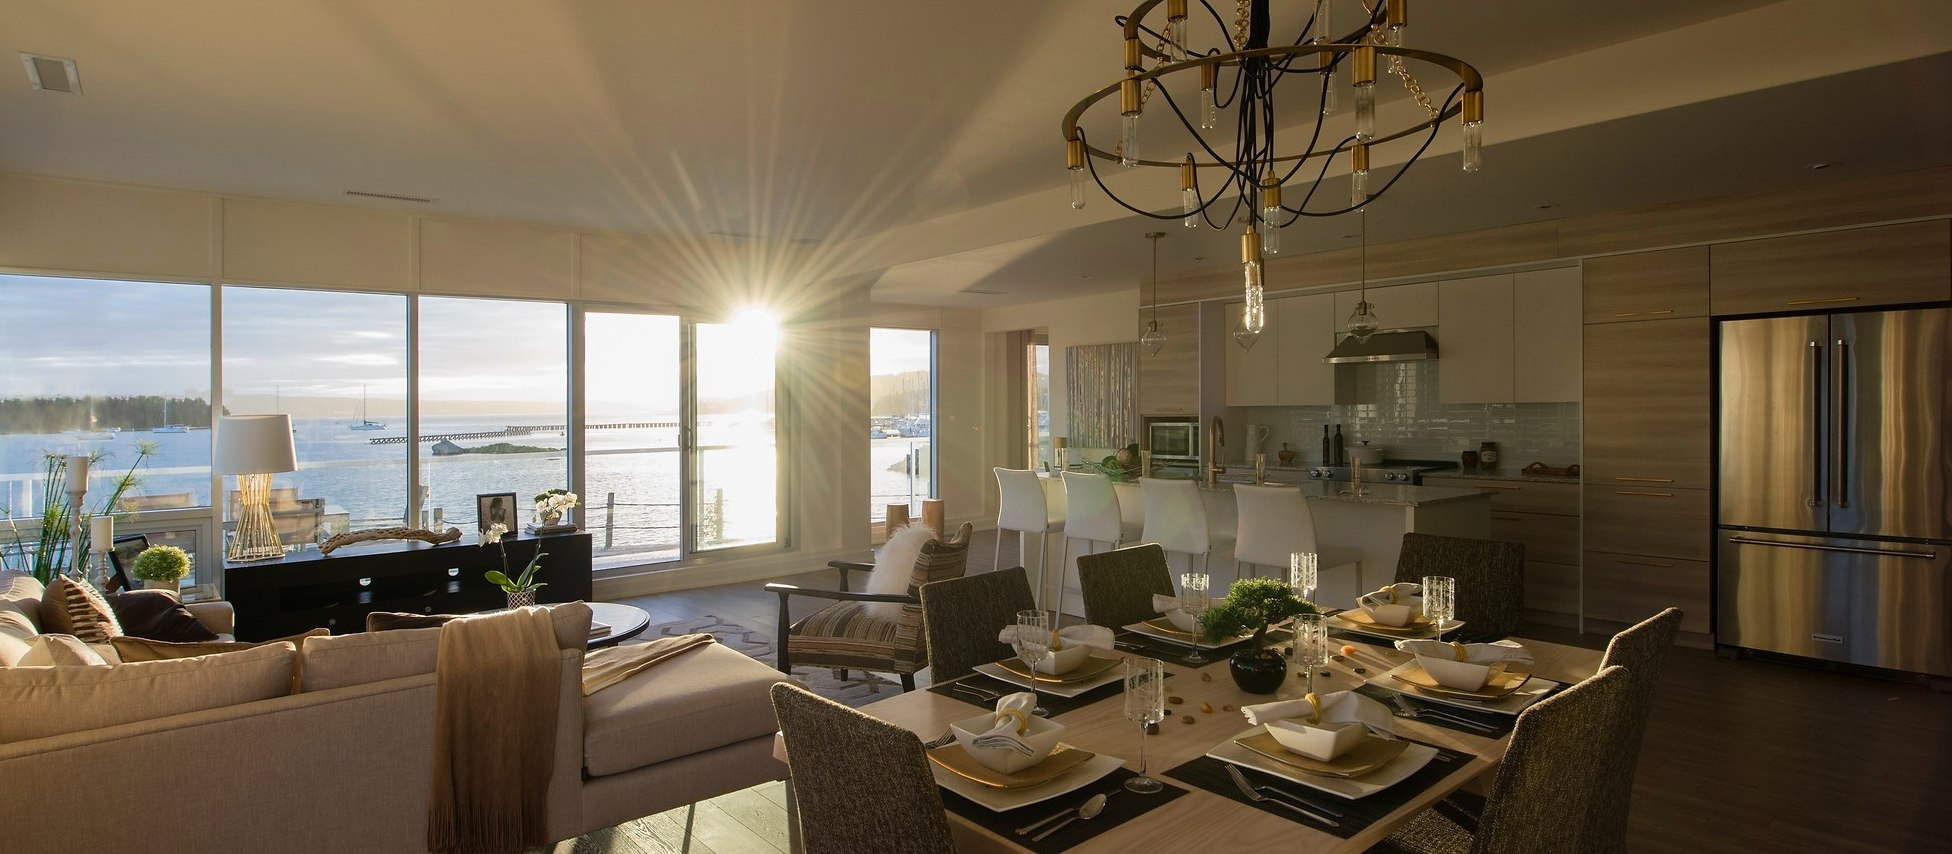 Seapoint_LivingDining